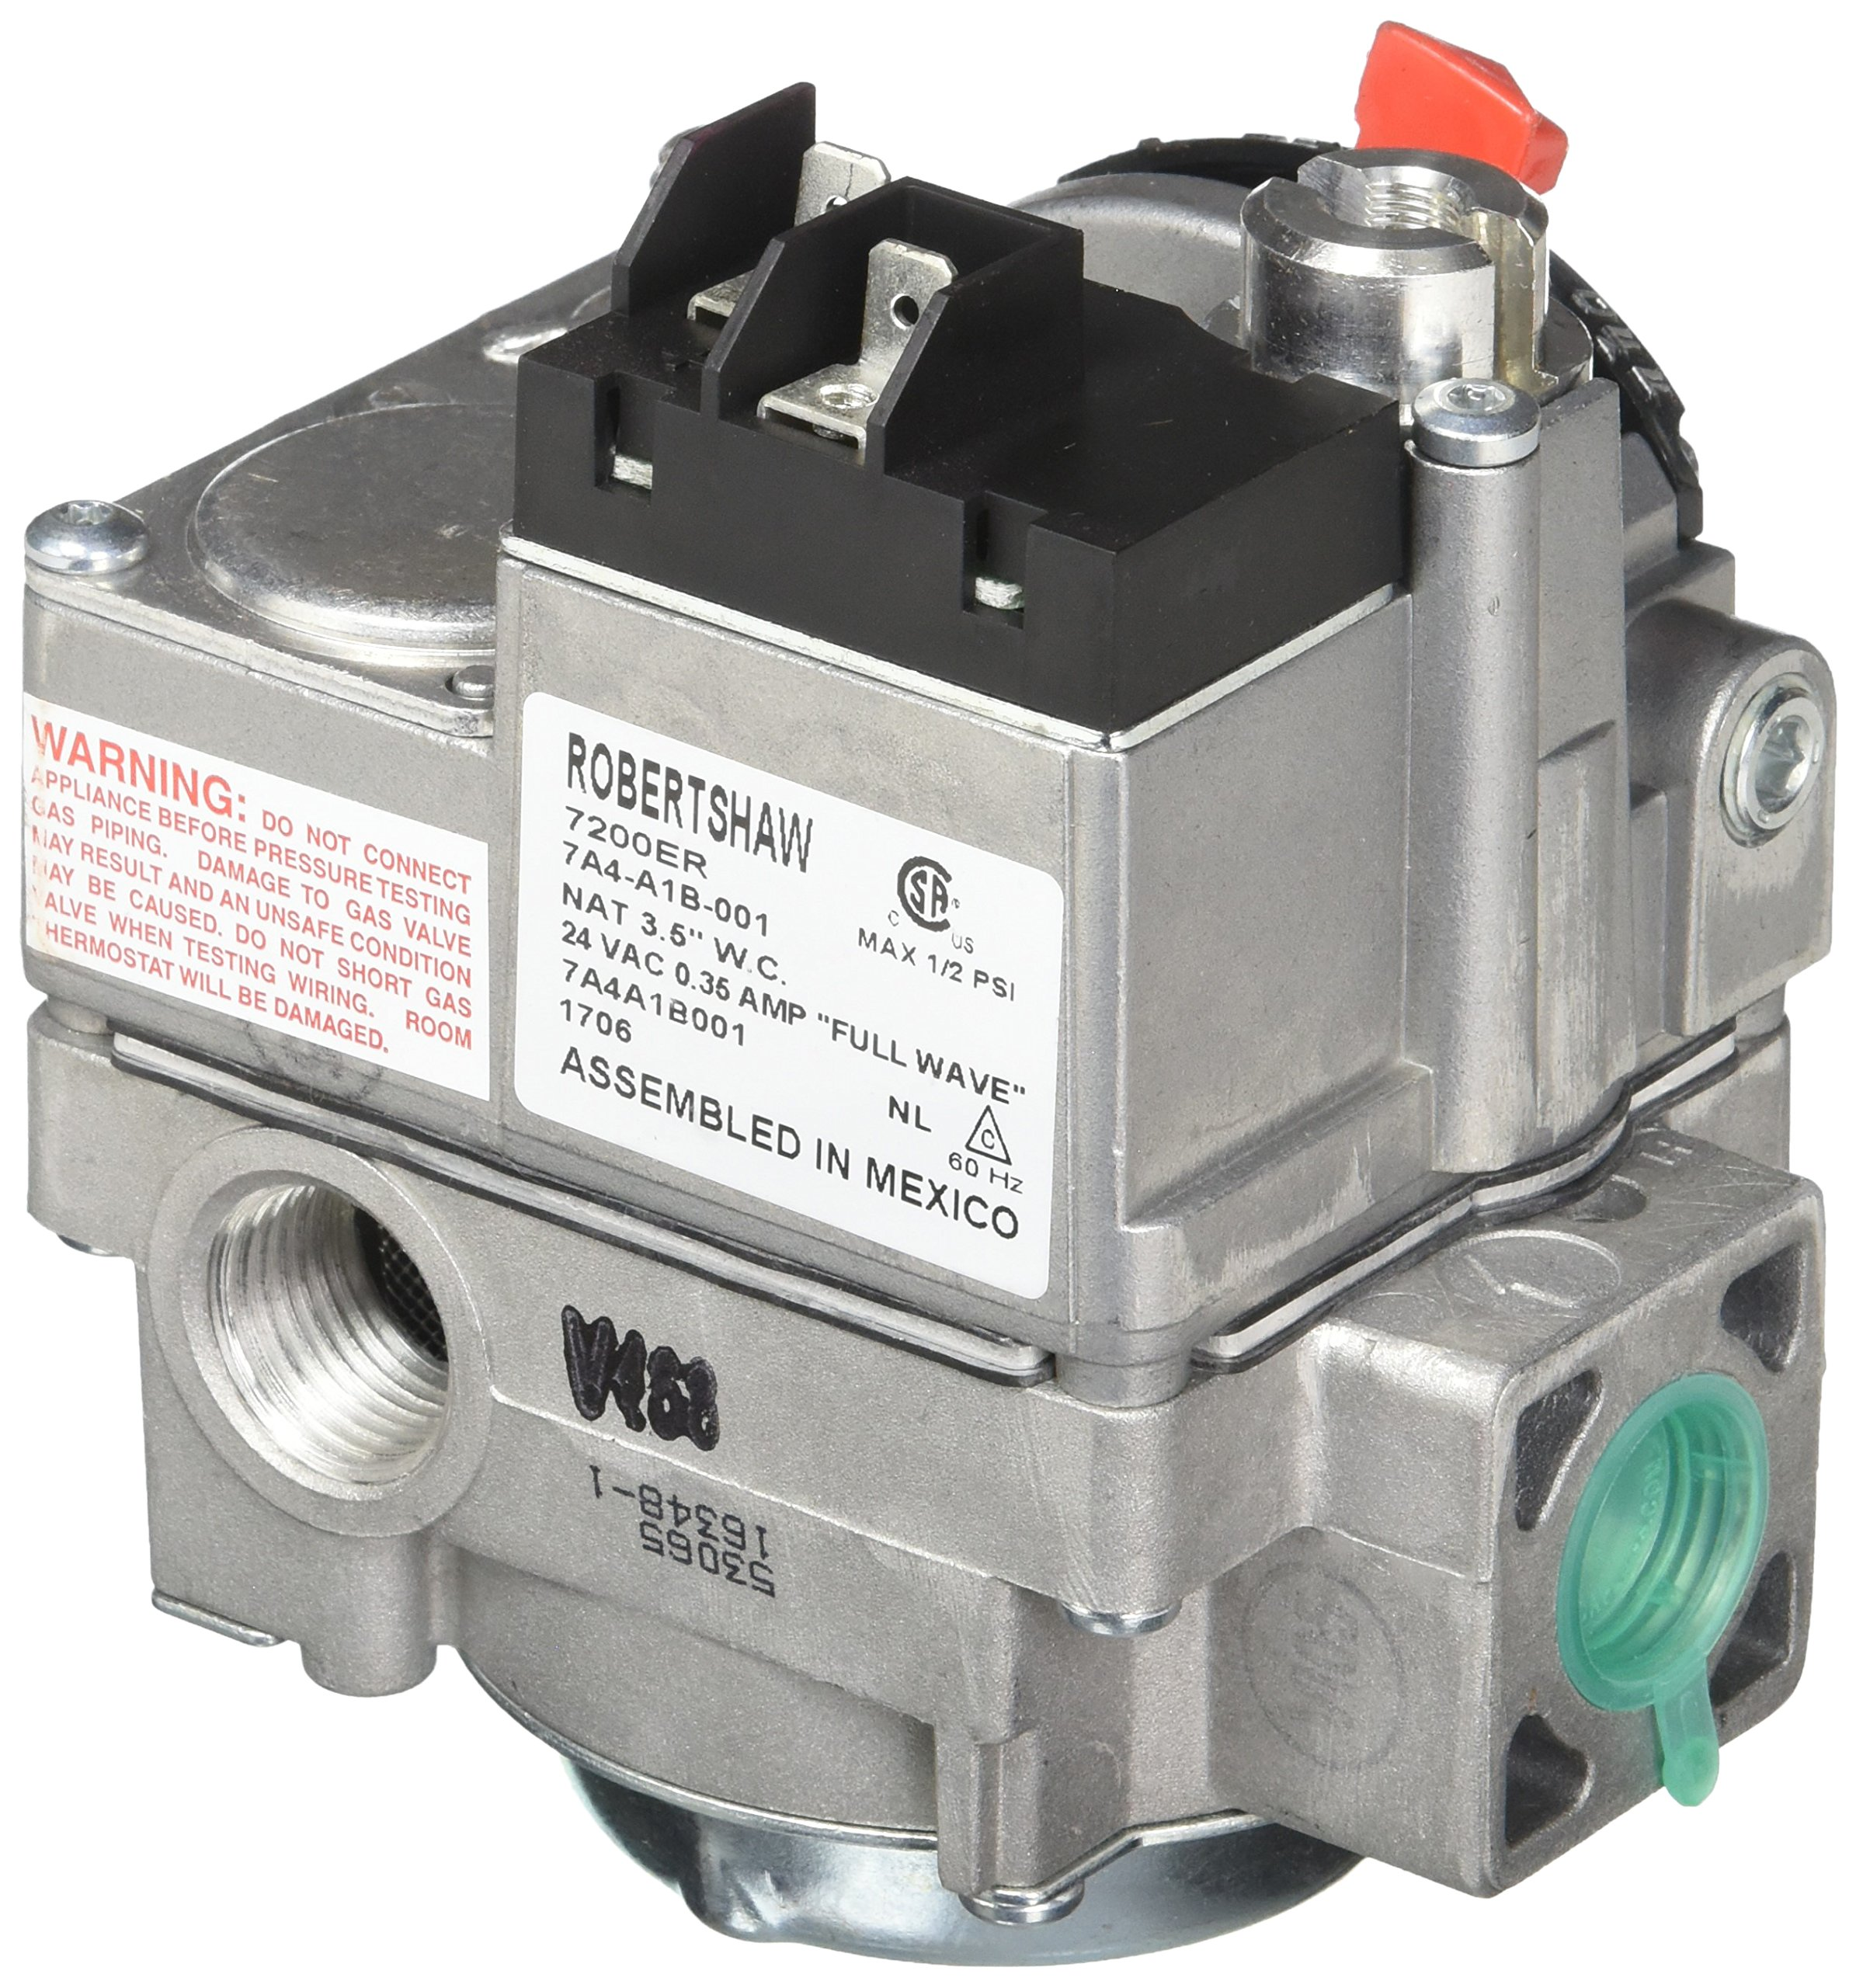 Robertshaw 720-402 Combination Dual Gas Valve With Side Taps